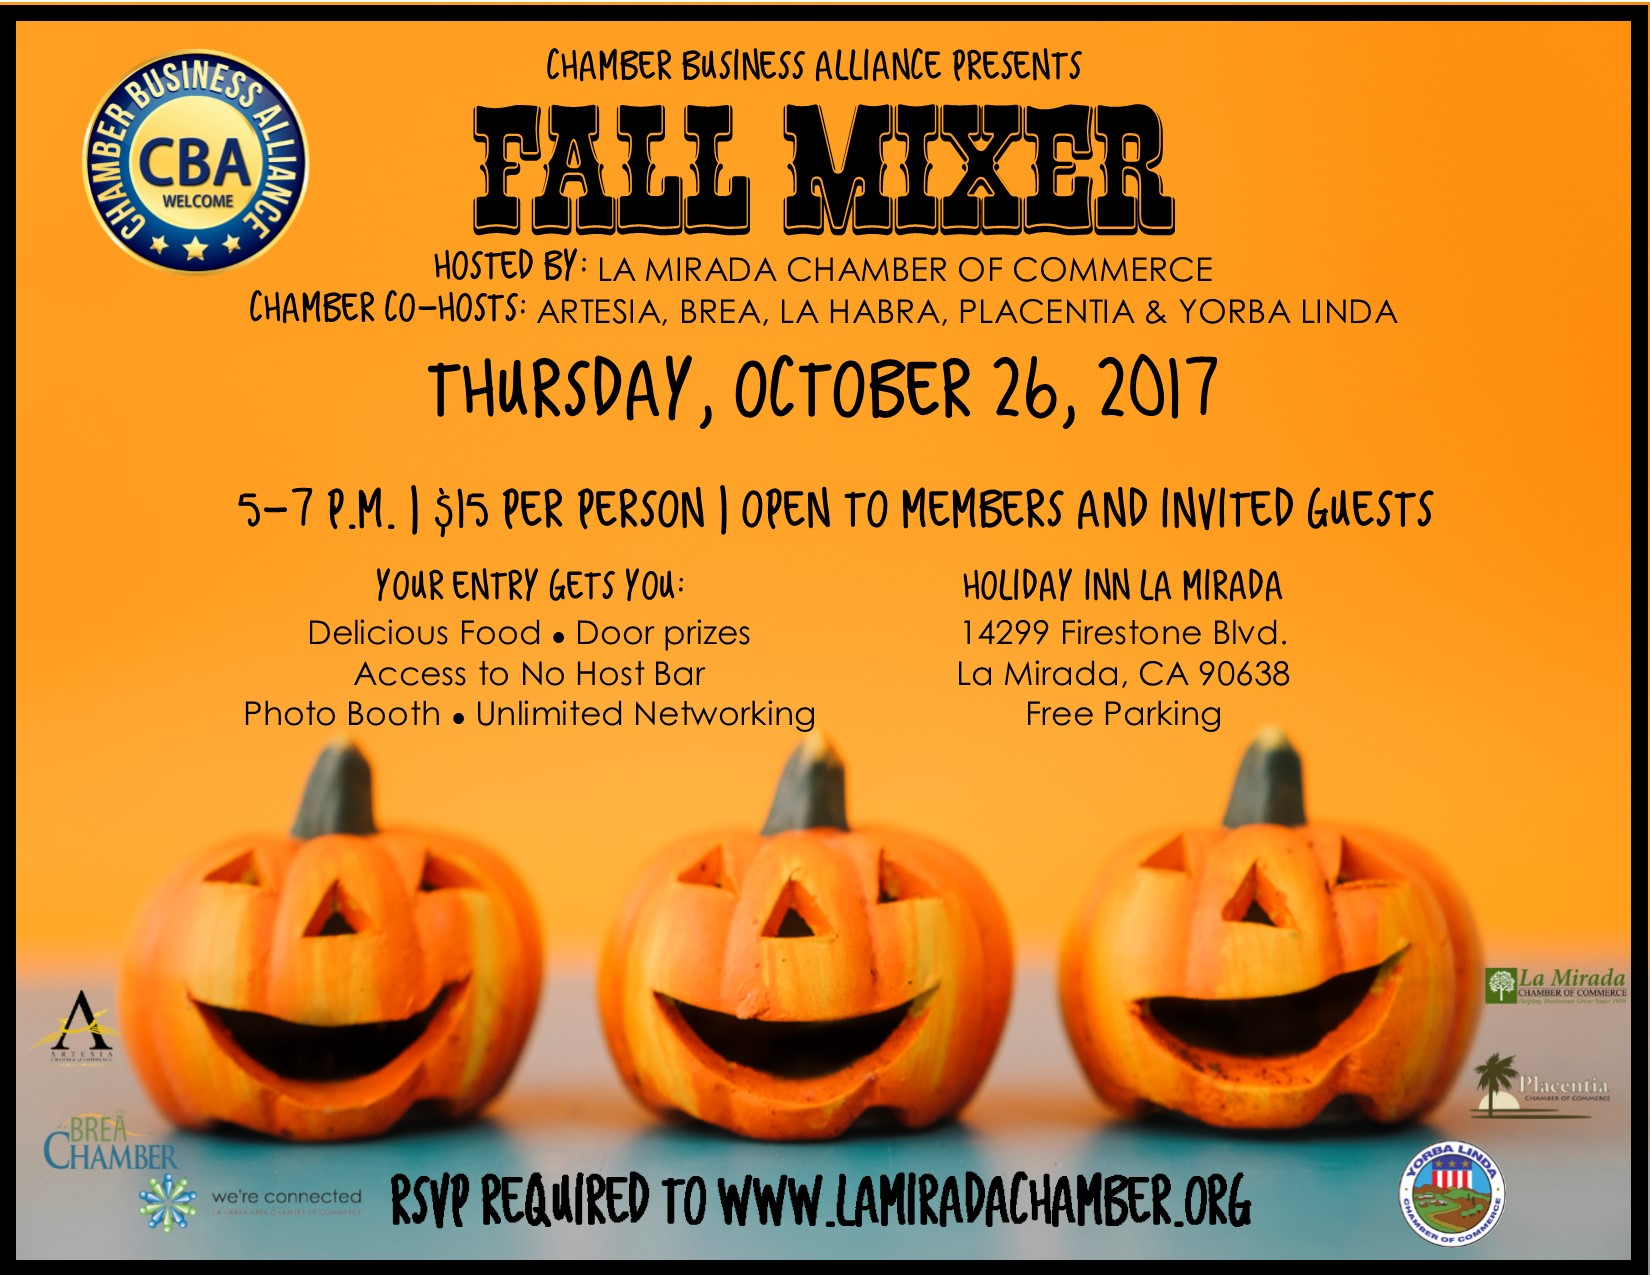 http://www.lamiradachamber.org/events/details/c-b-a-fall-mixer-hosted-by-la-mirada-chamber-of-commerce-1296